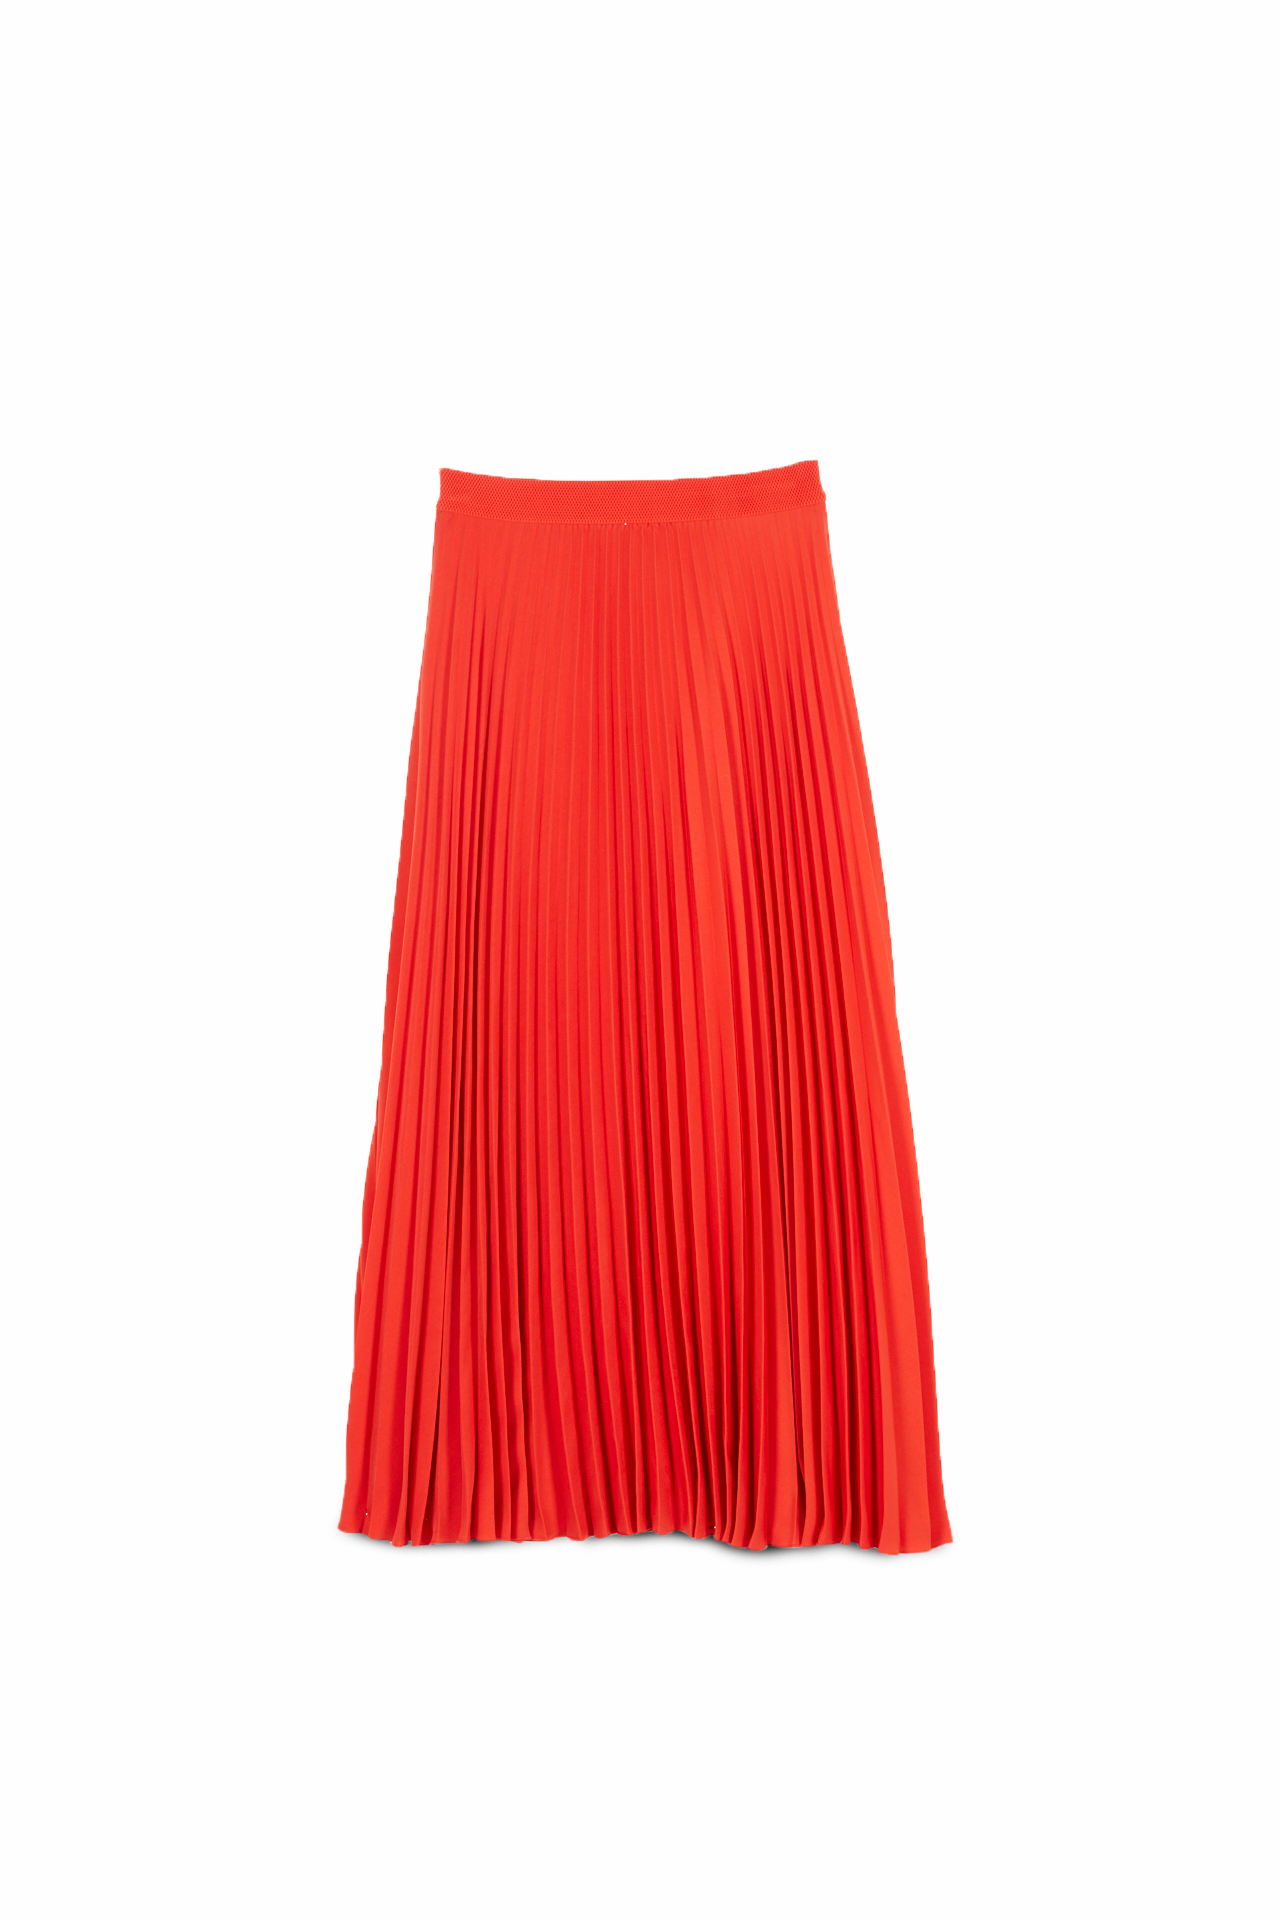 Berenice Long pleated skirt La Vallée Village